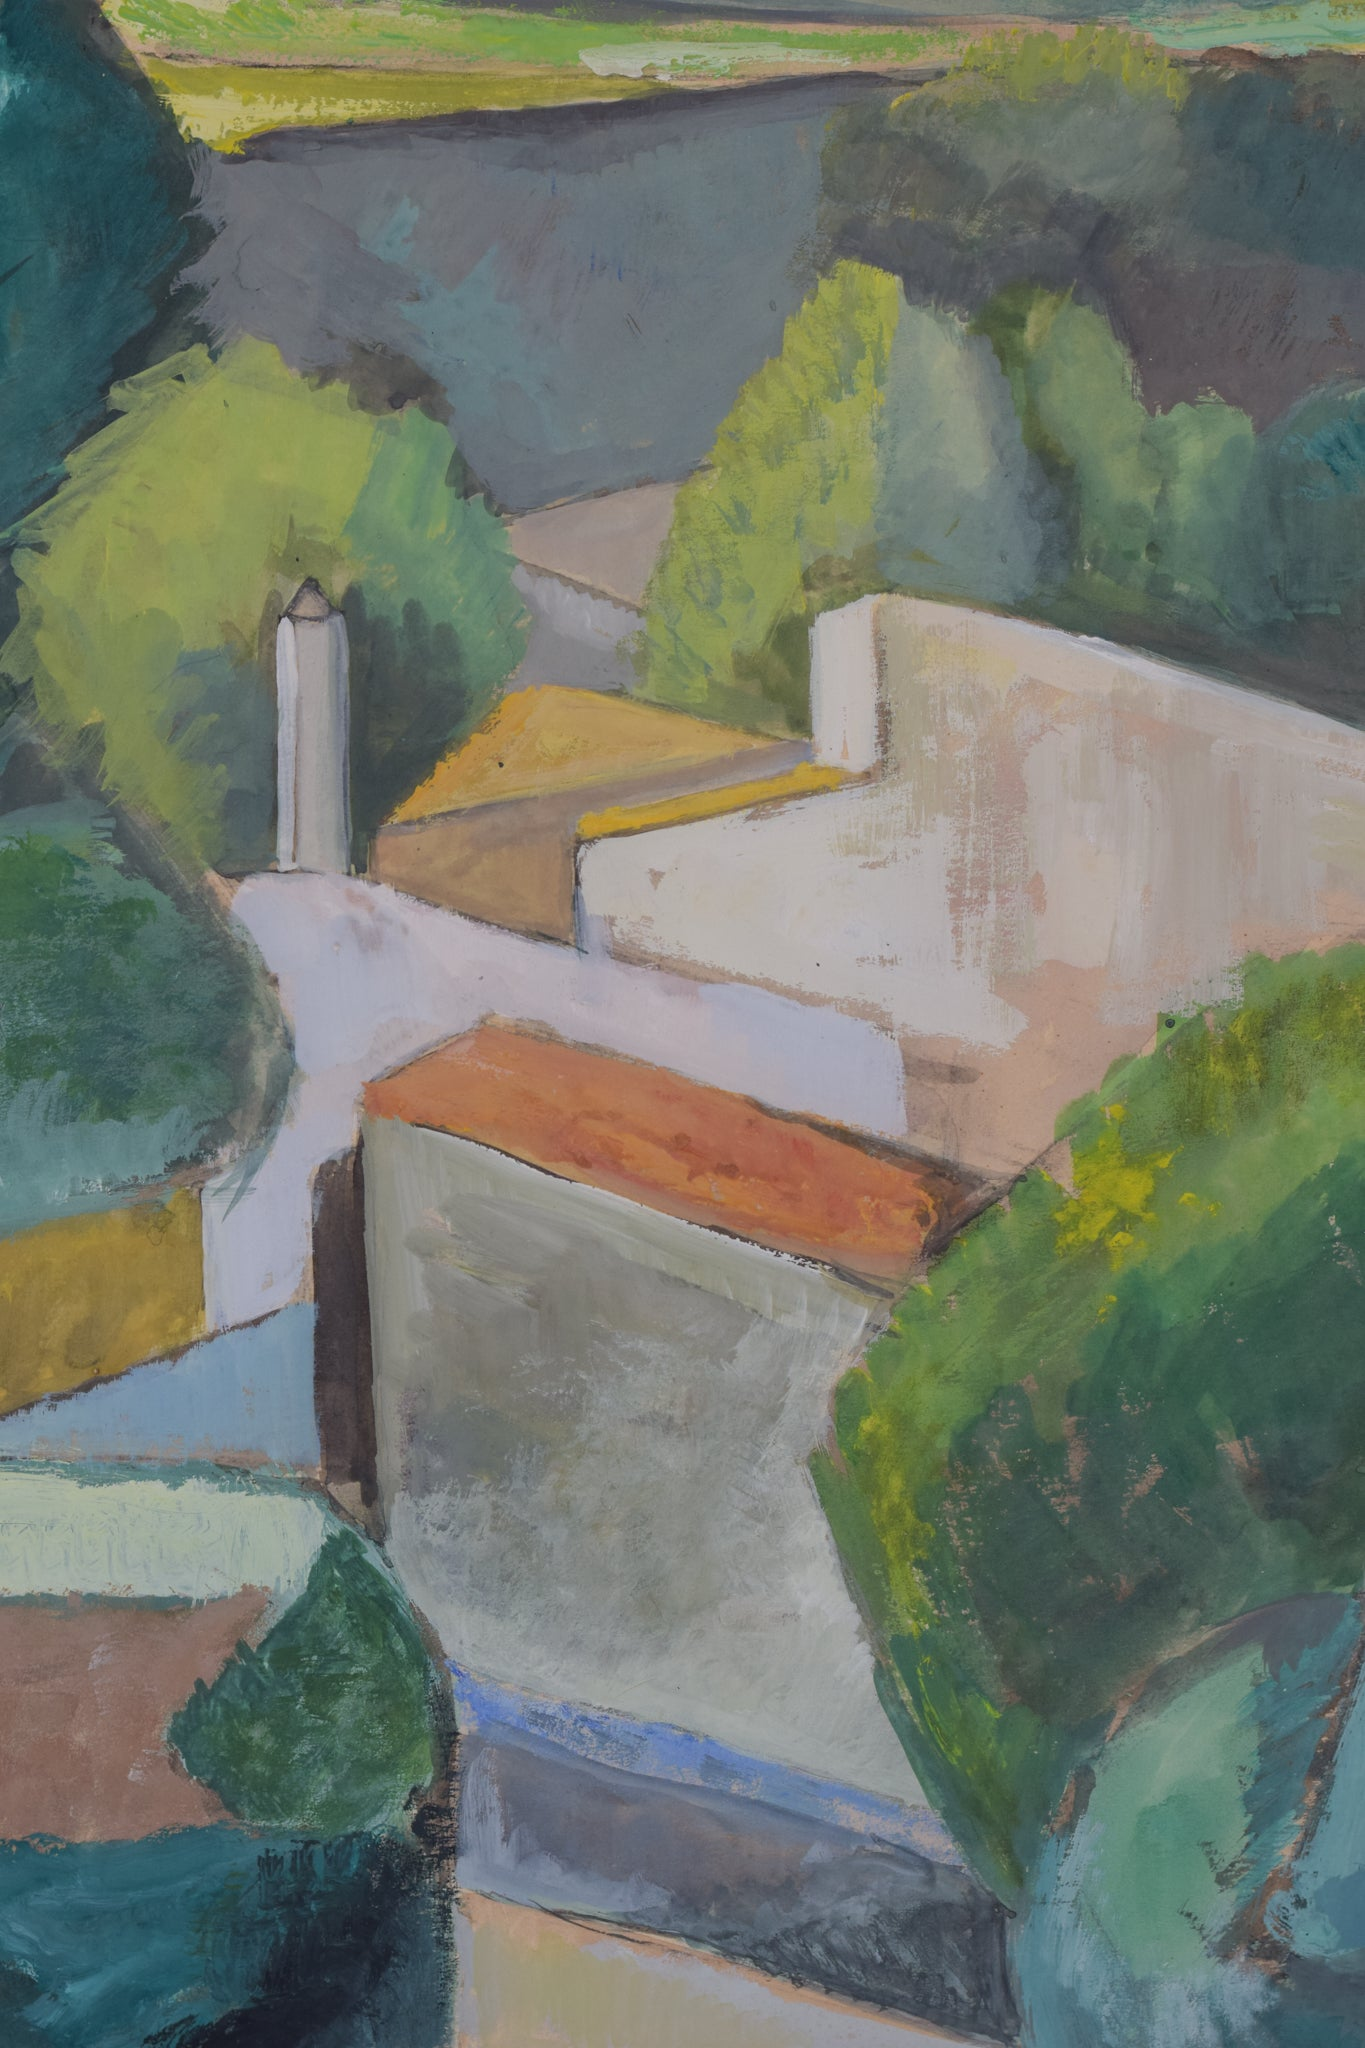 Cubist Village in a Mountain Landscape_Detail 2